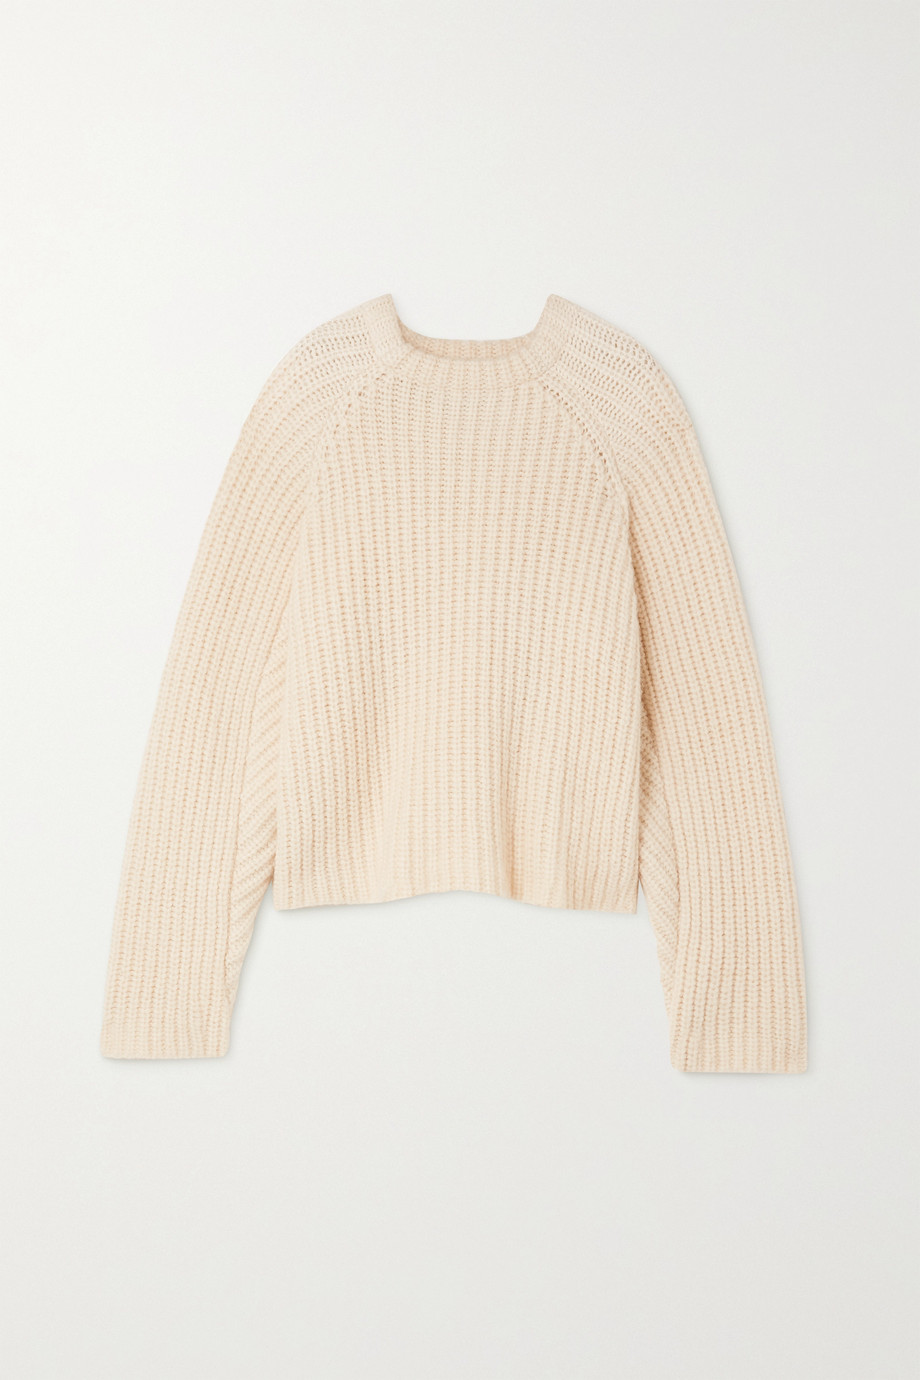 ENVELOPE1976 + NET SUSTAIN Seoul ribbed alpaca, cotton and merino wool-blend sweater